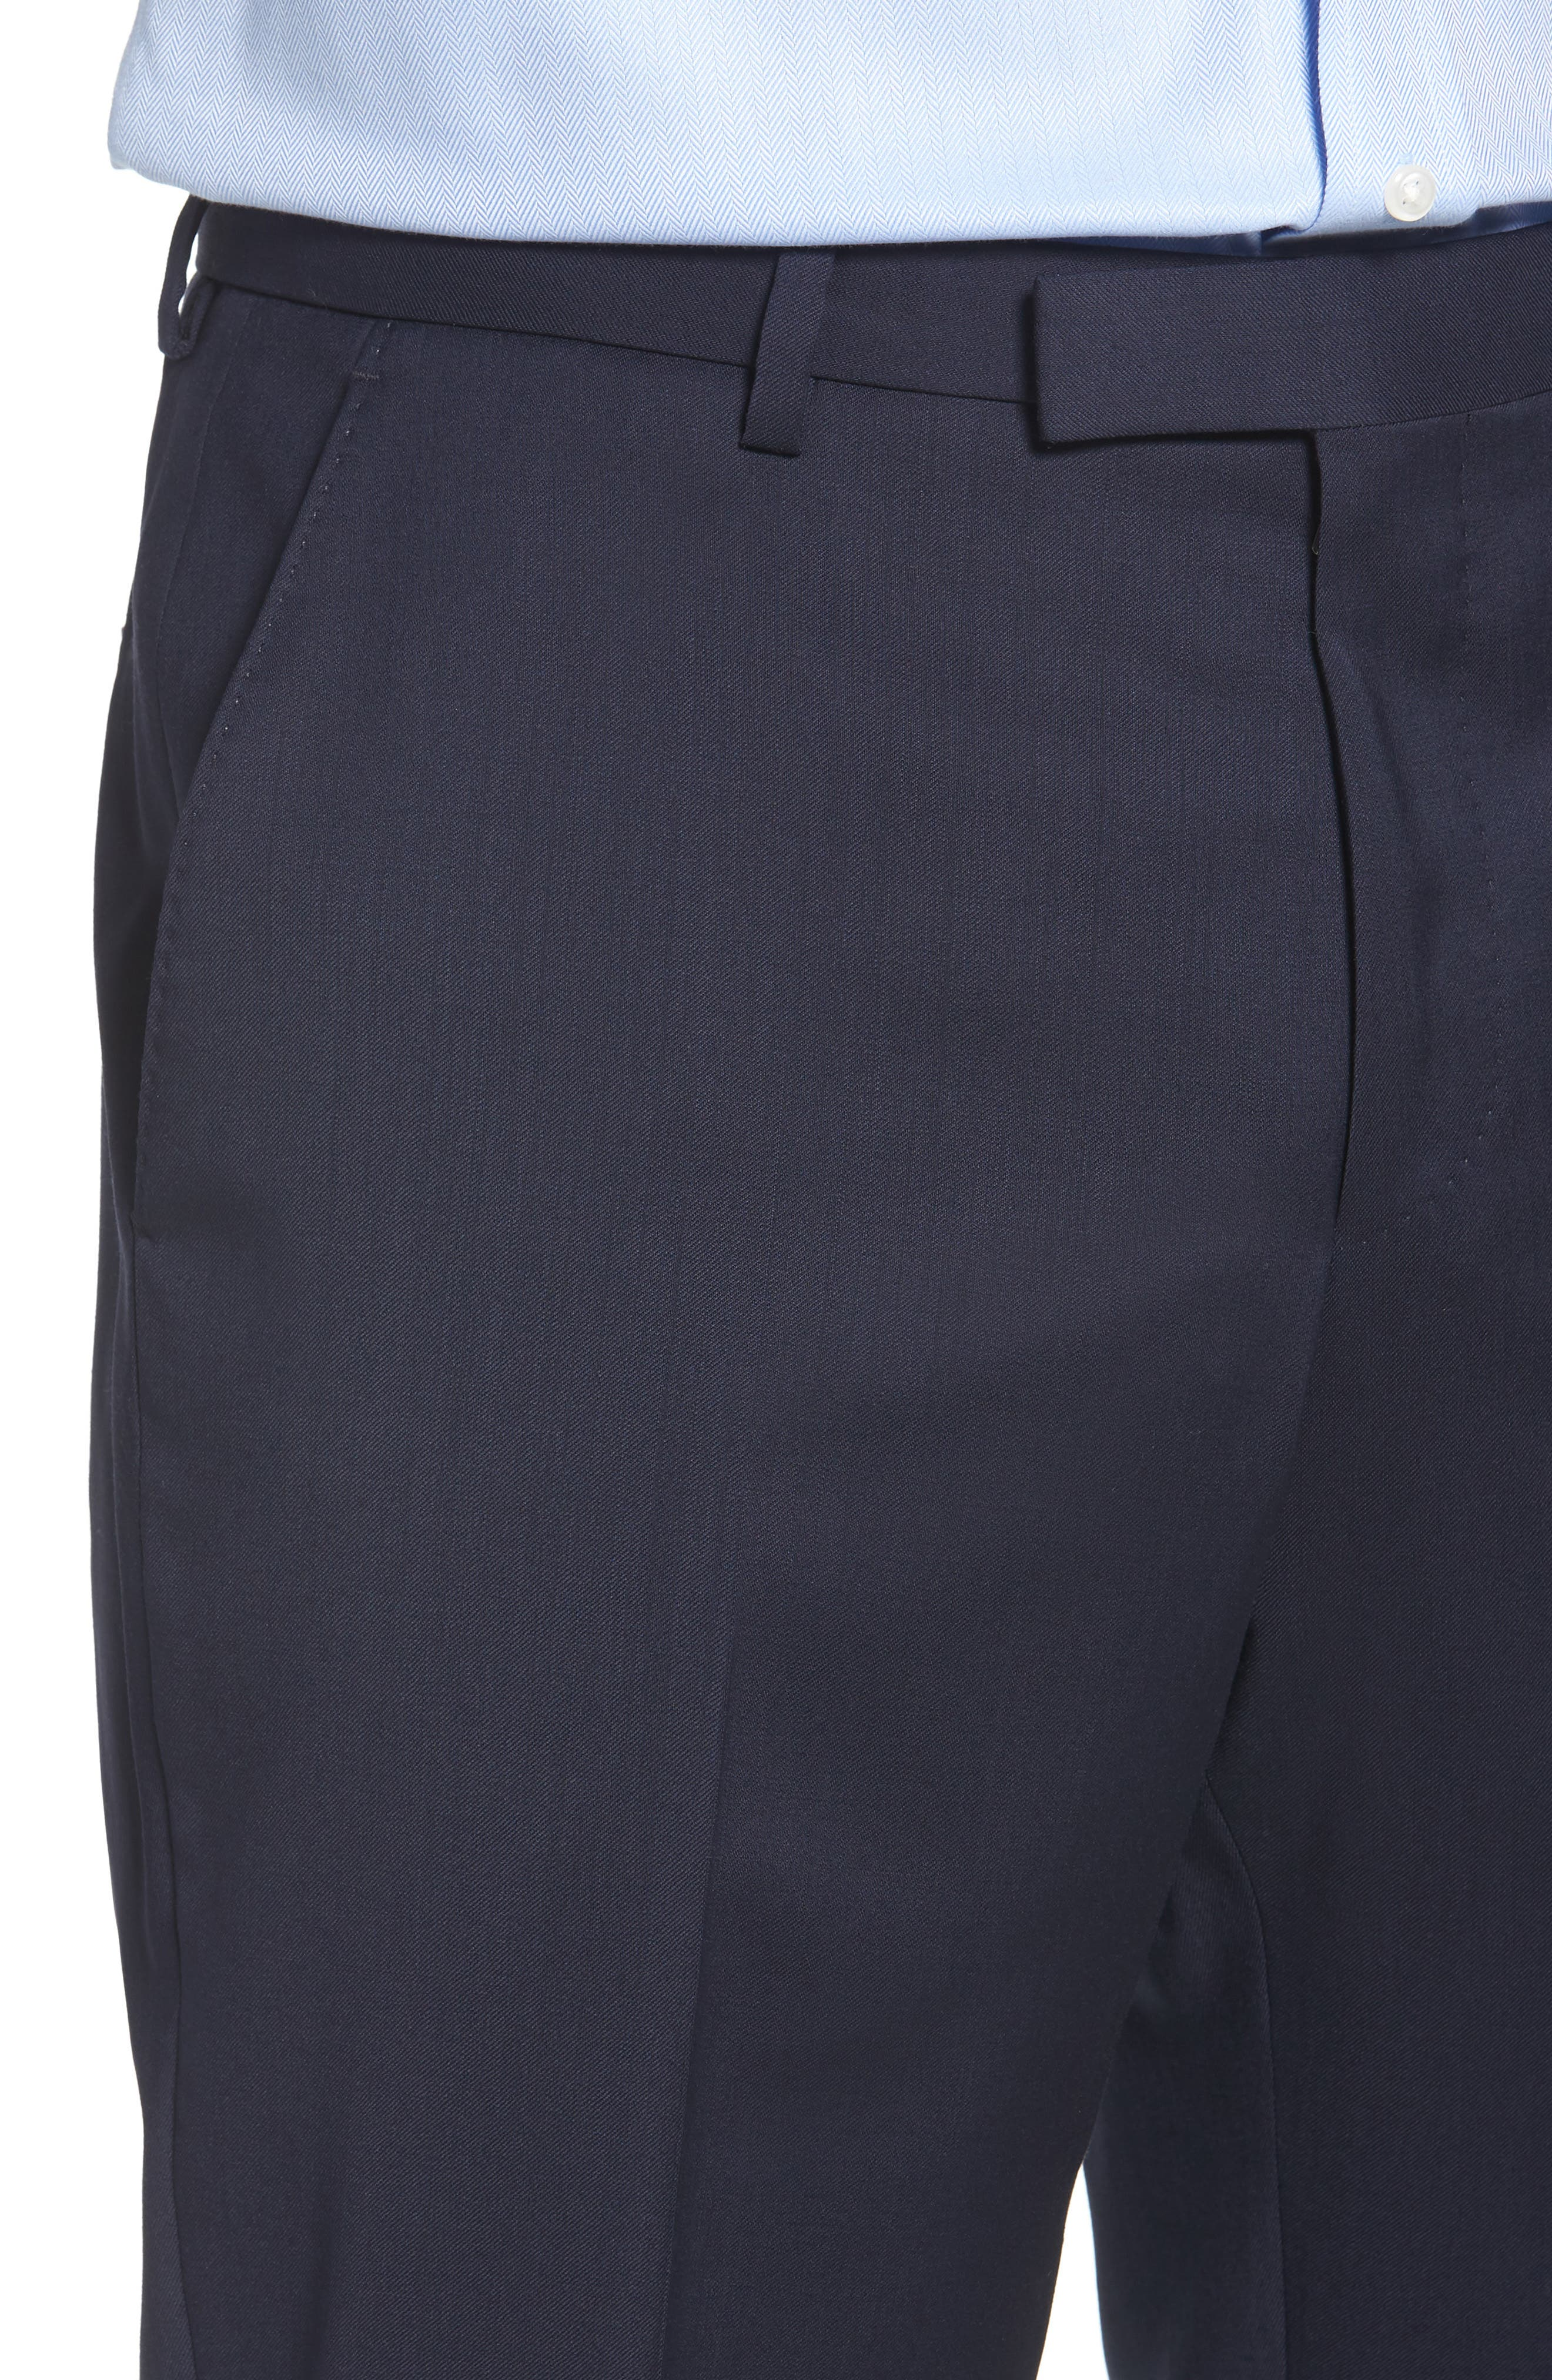 Leenon Flat Front Regular Fit Solid Wool Trousers,                             Alternate thumbnail 4, color,                             NAVY